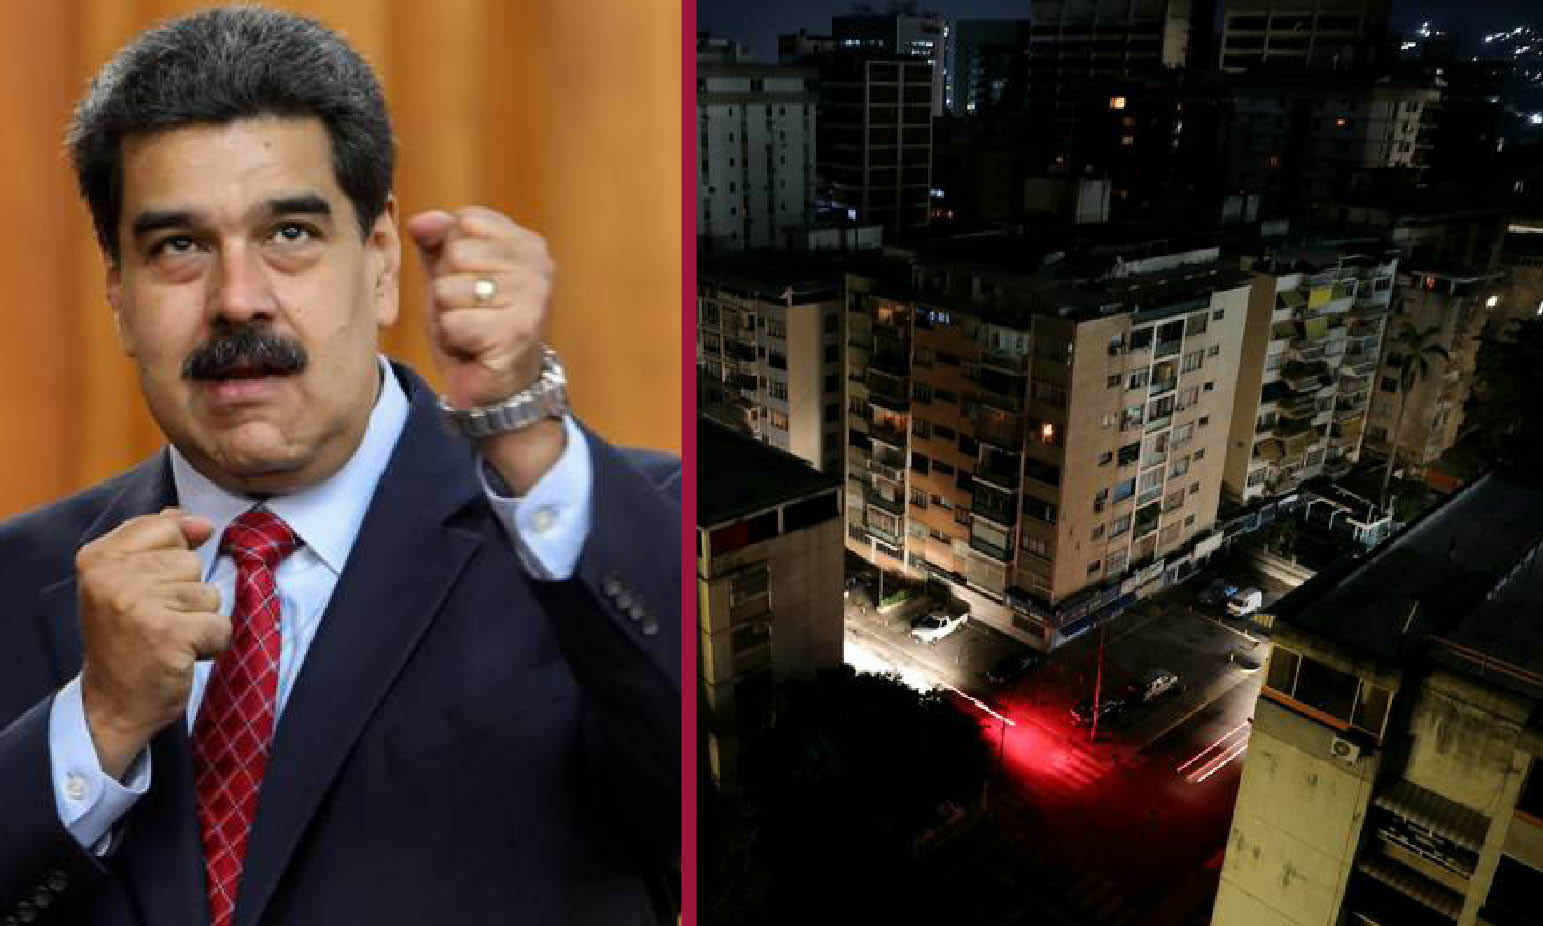 ELECTROMAGNETIC ATTACK: ANOTHER BLACKOUT IN VENEZUELA